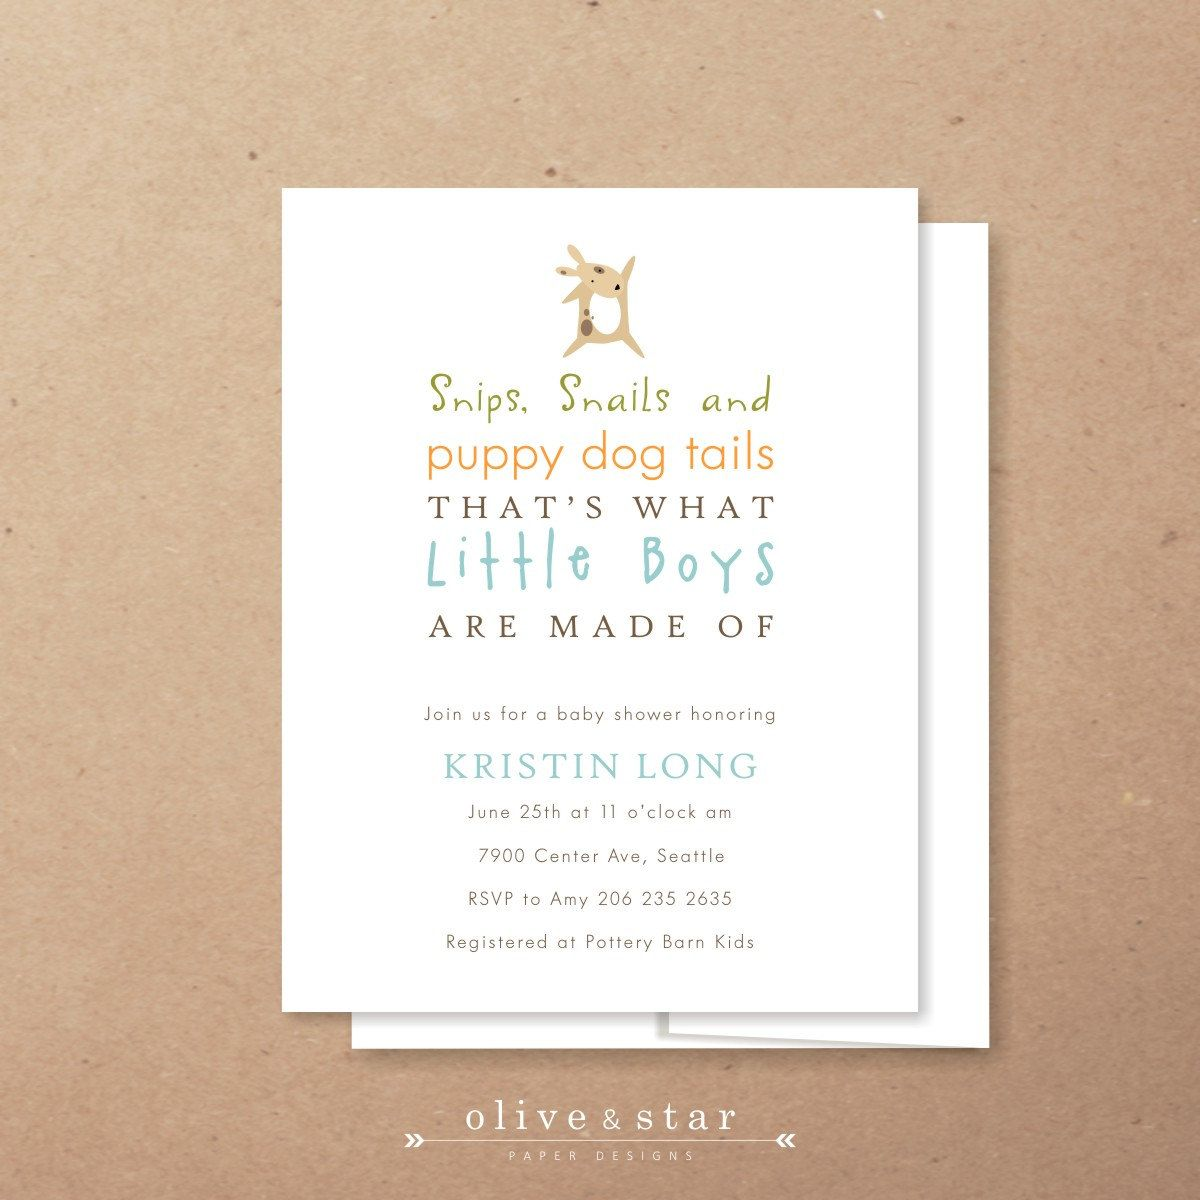 Snips Snails And Puppy Dog Tails Baby Shower Invitation Set Kids Birthday Boy Nursery Rhyme Note Card Modern